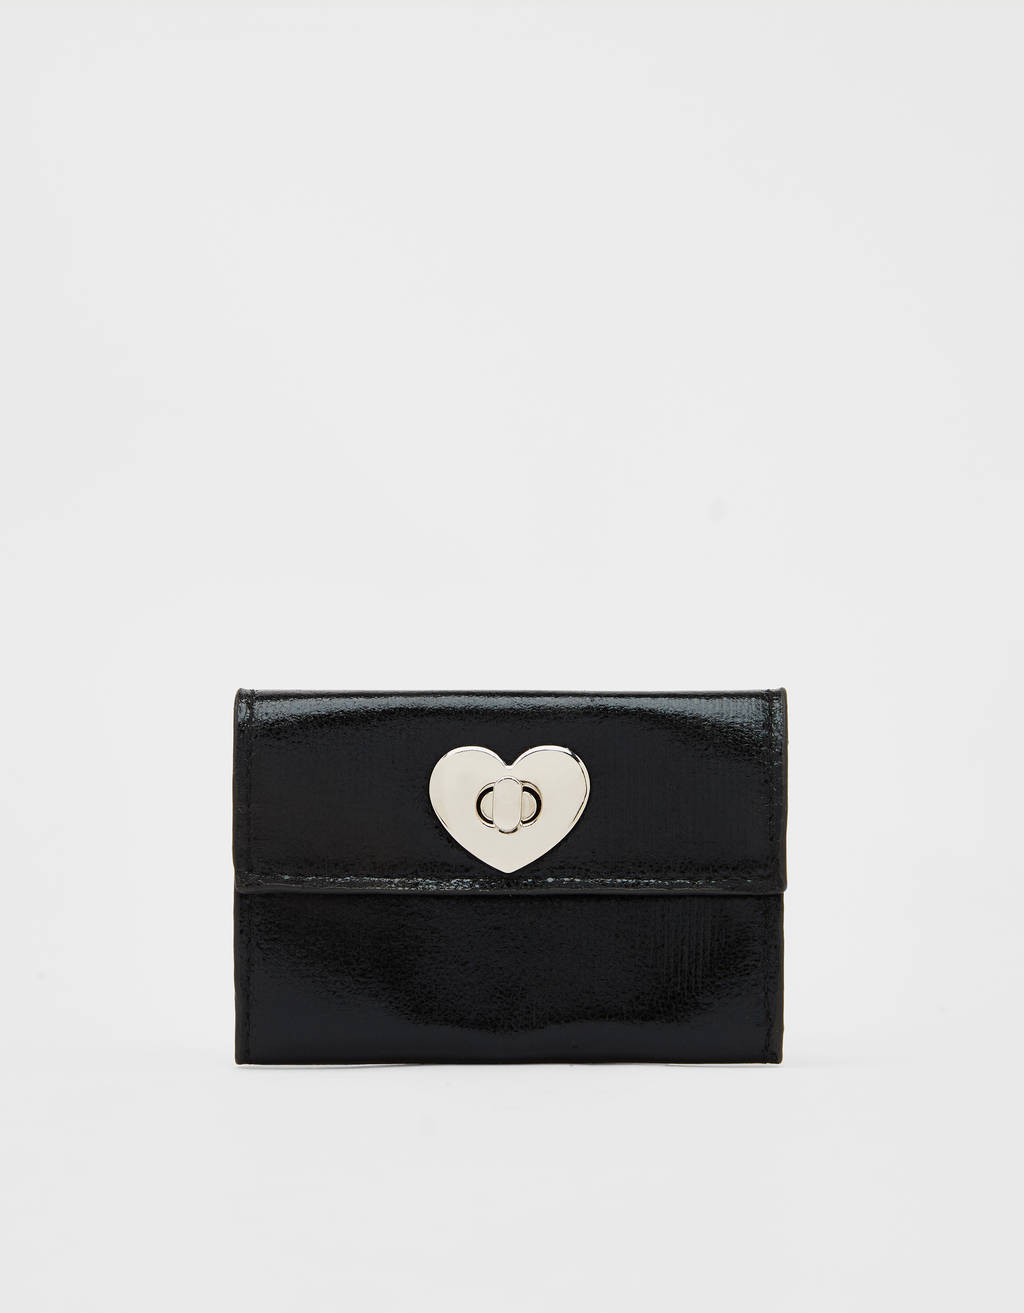 Purse with heart